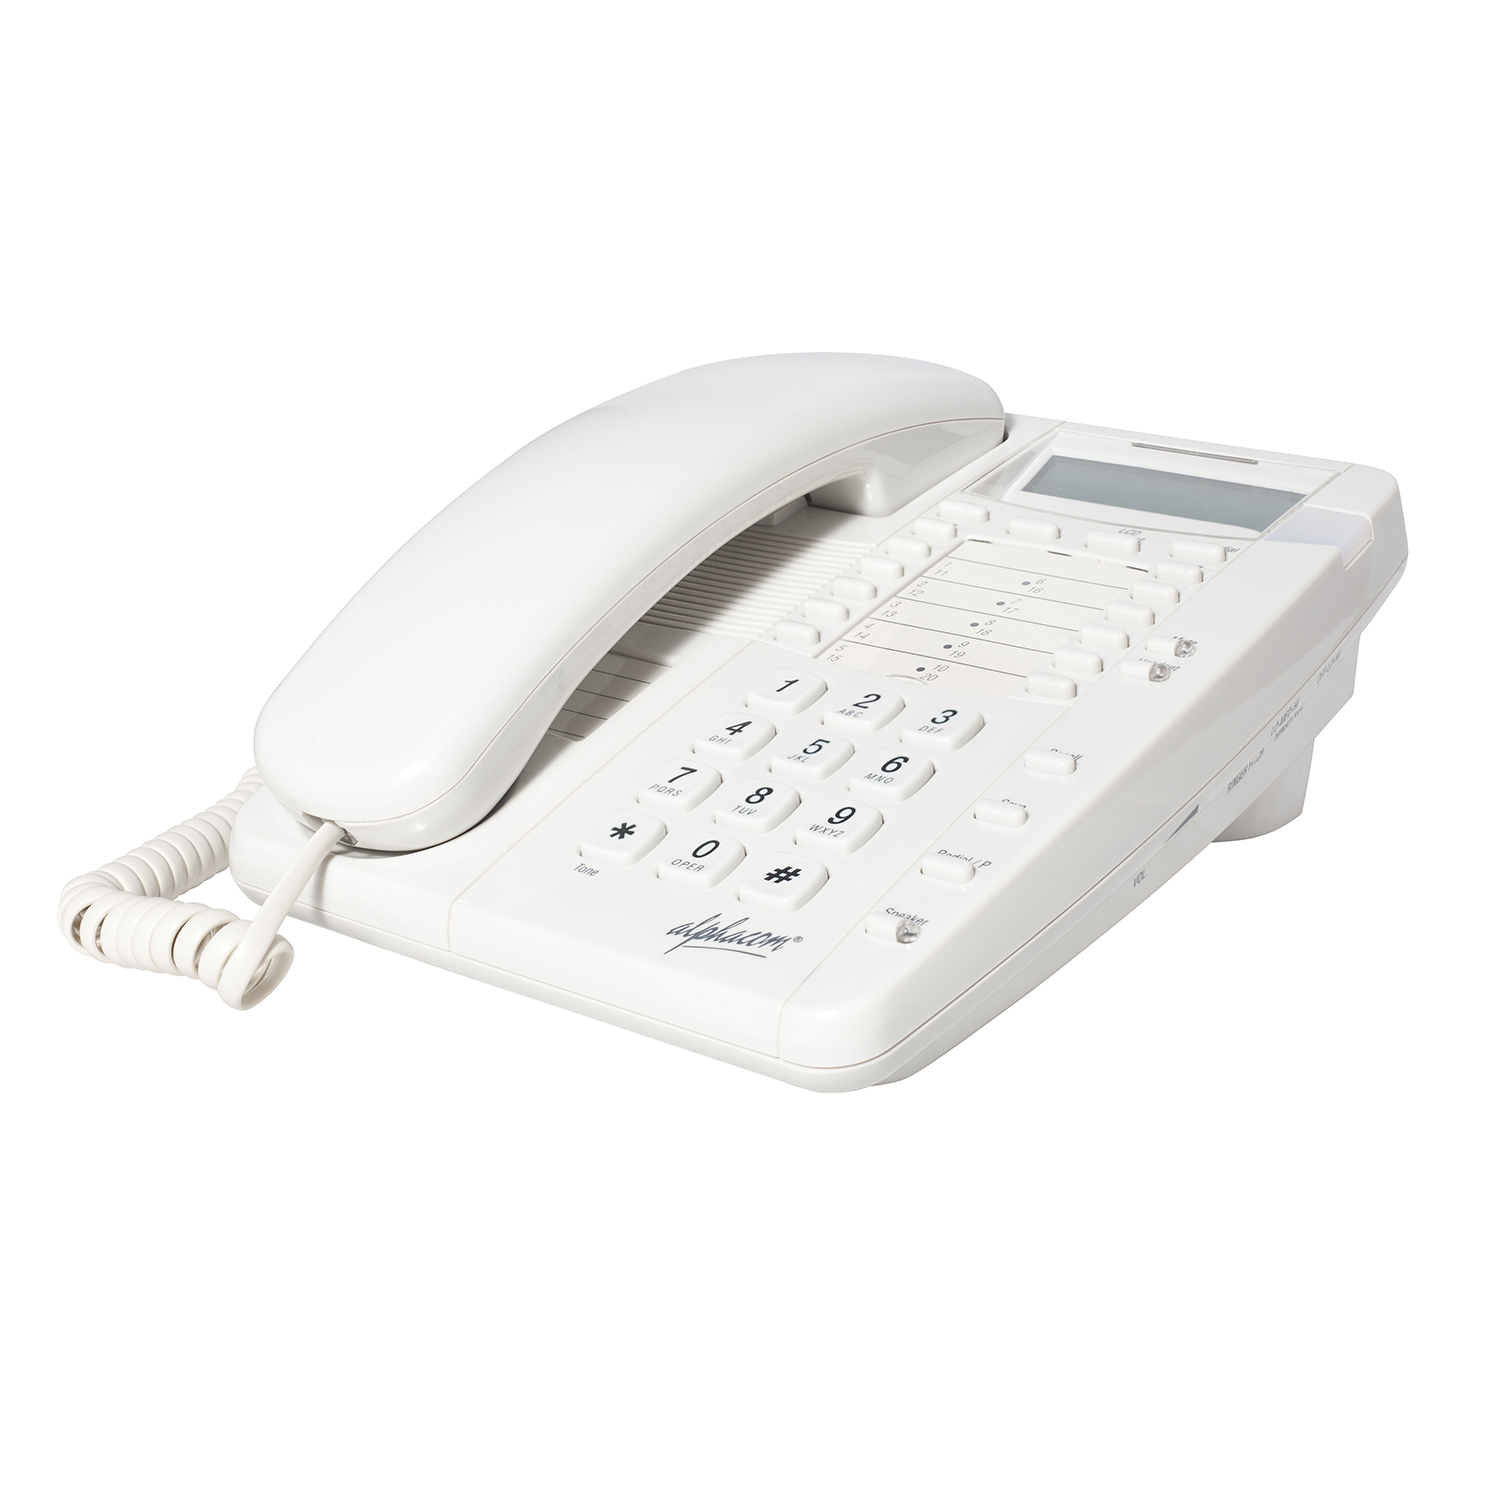 Alphacom NR205HP Telephone